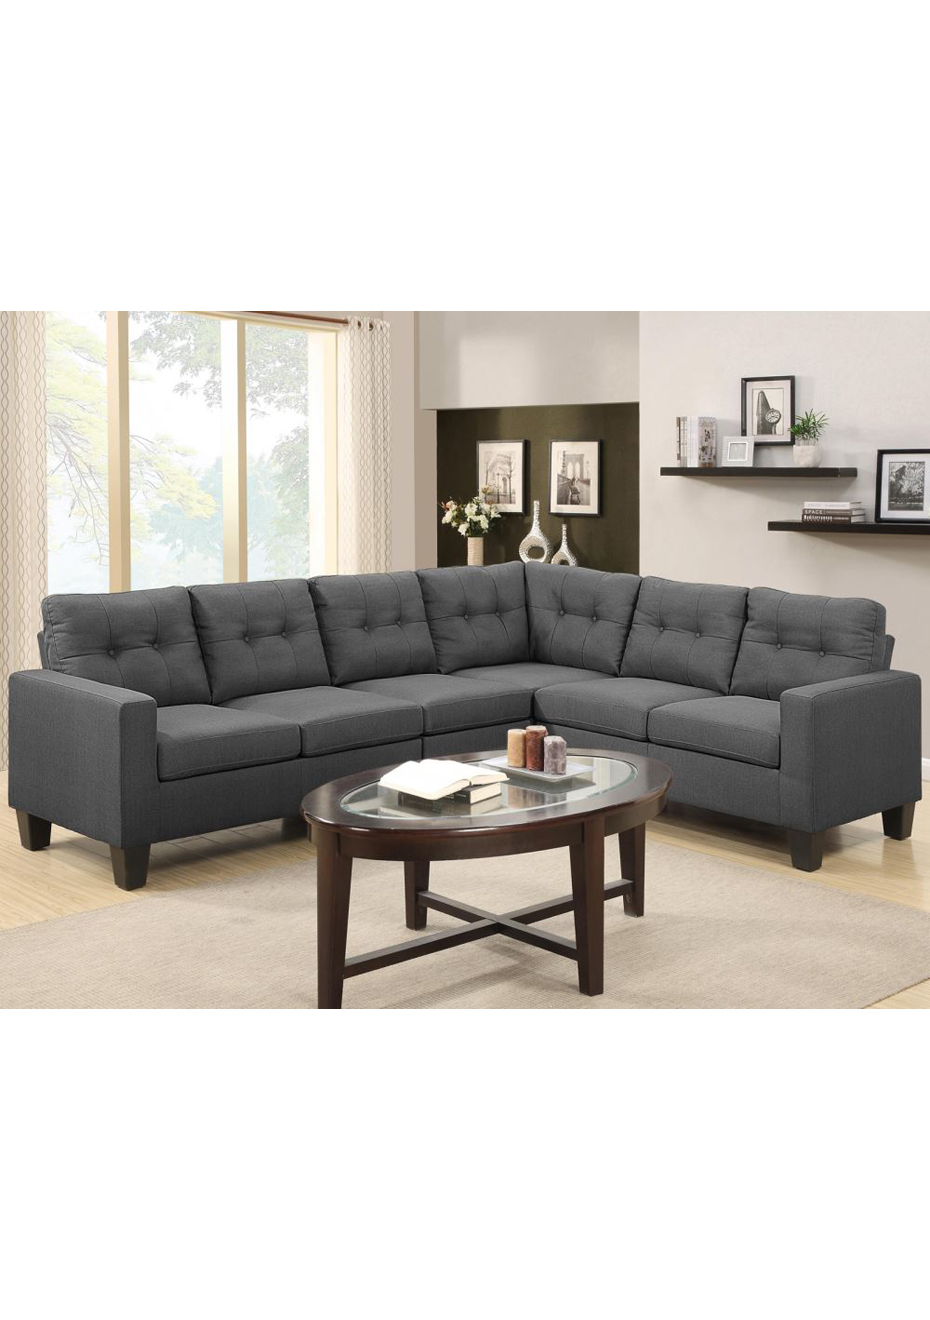 Lounge Suites Kensington Sofa Suite Corner Grey